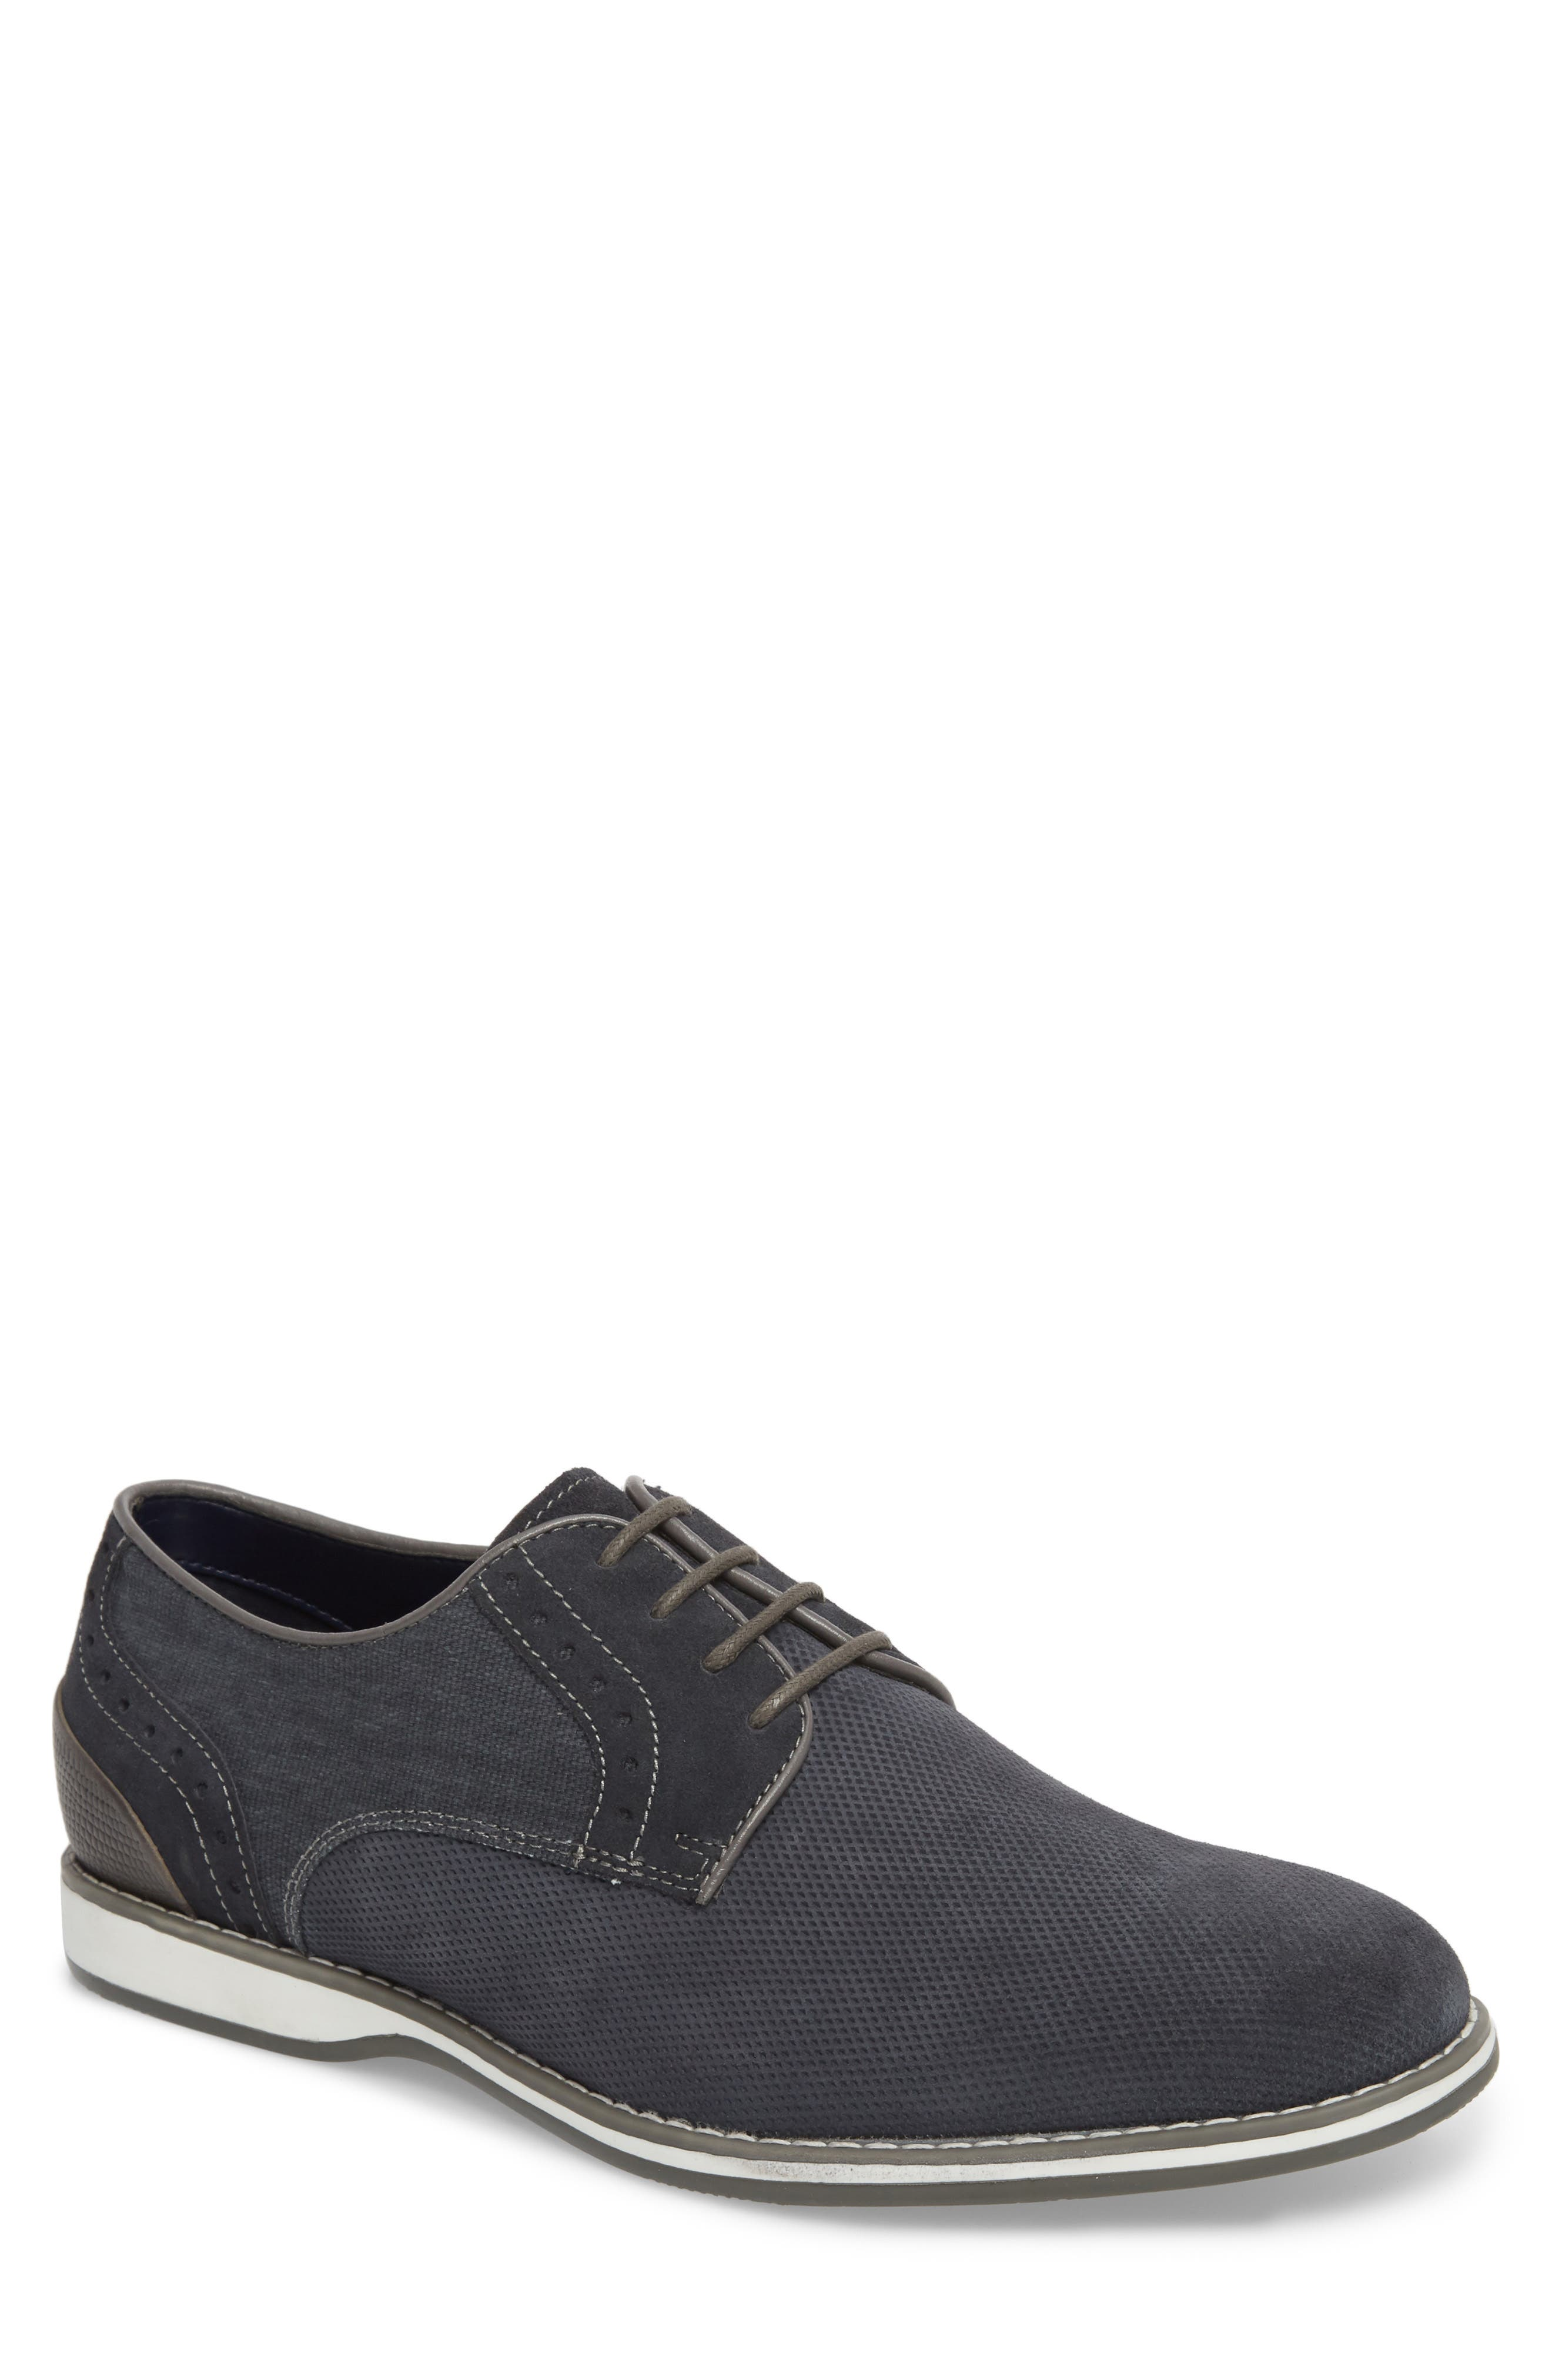 REACTION KENNETH COLE Weiser Lace-up Derby, Main, color, 410